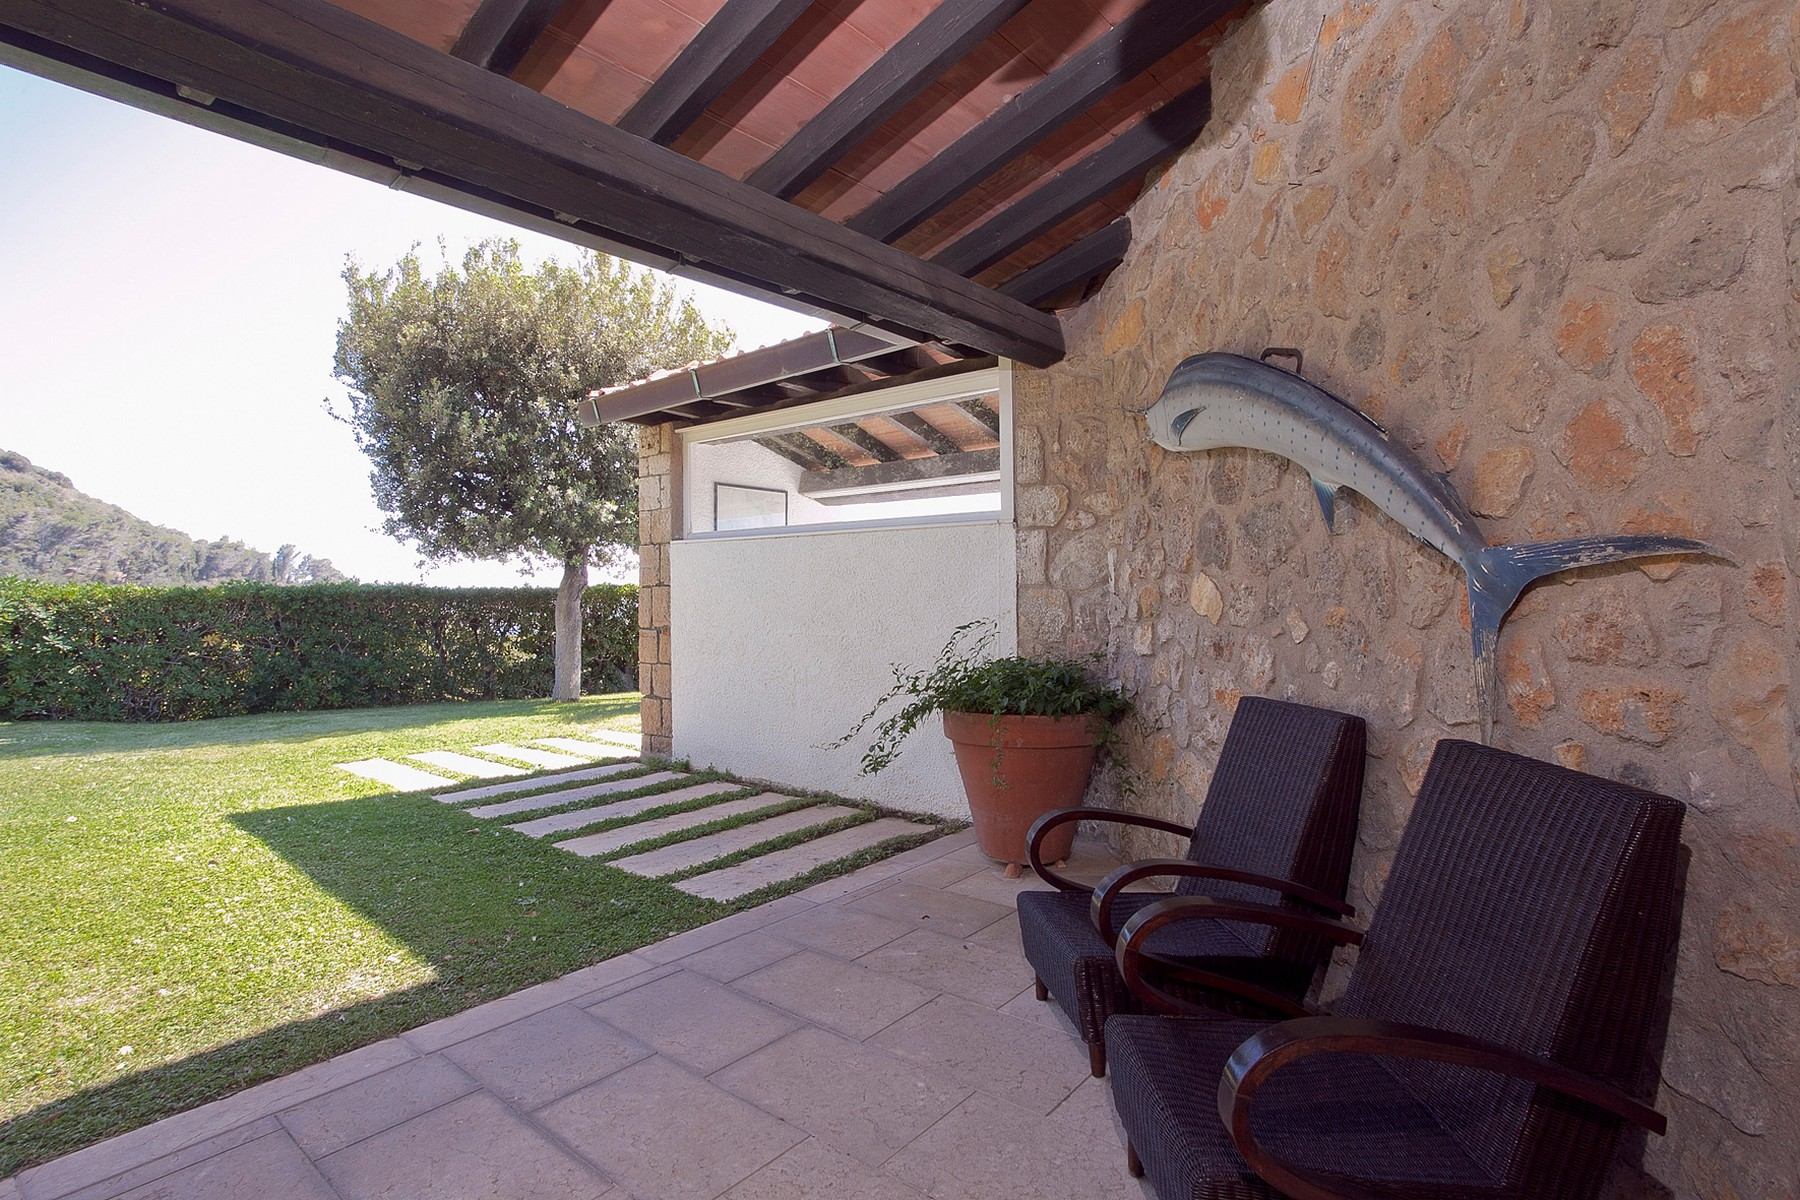 Additional photo for property listing at Splendid Villa on Monte Argentario Cala Piccola Di Monte Argentario Grosseto, Grosseto 58019 Italien